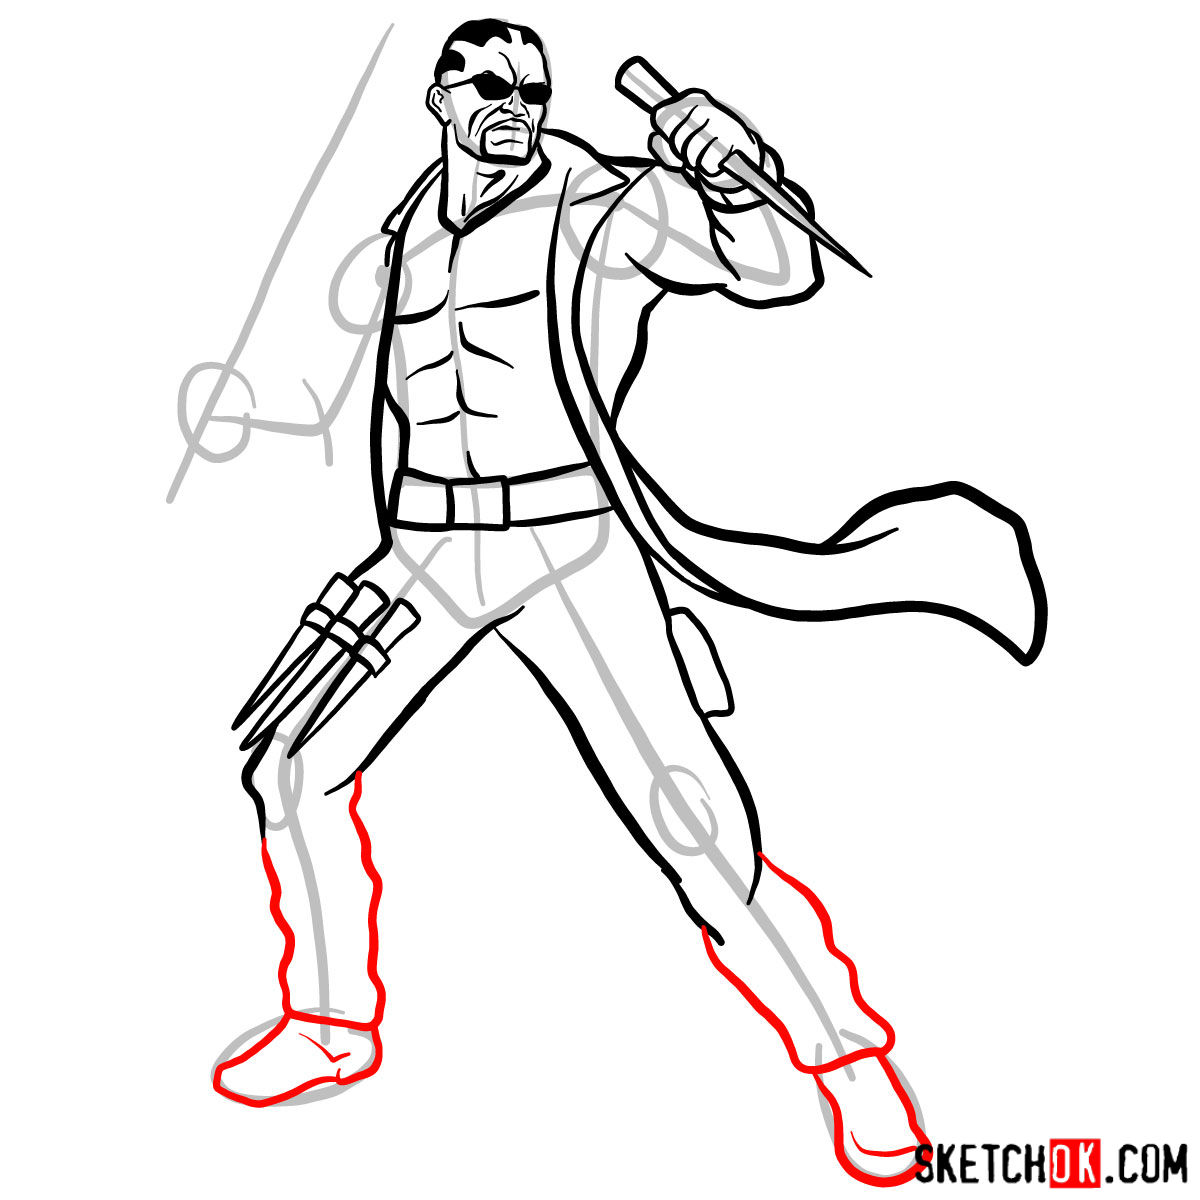 How to draw Blade from Marvel Comics - step 12